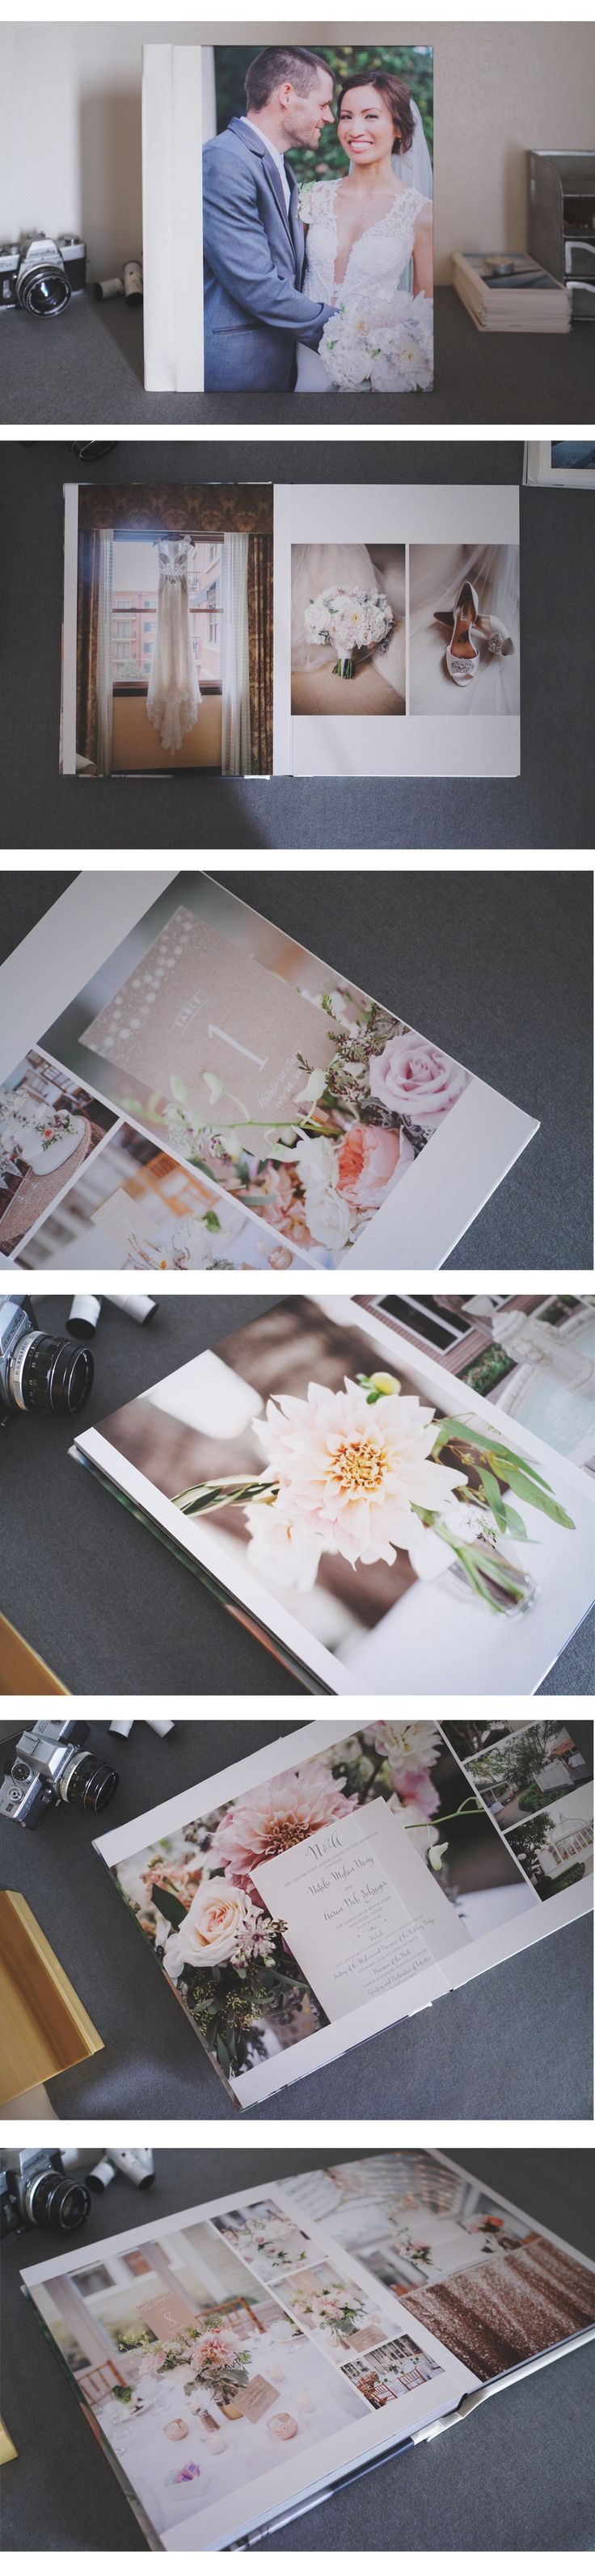 359 best photo book design images on pinterest photo books nicole chatham photography did a stunning job on her new flushmount album with image dual tone solutioingenieria Image collections